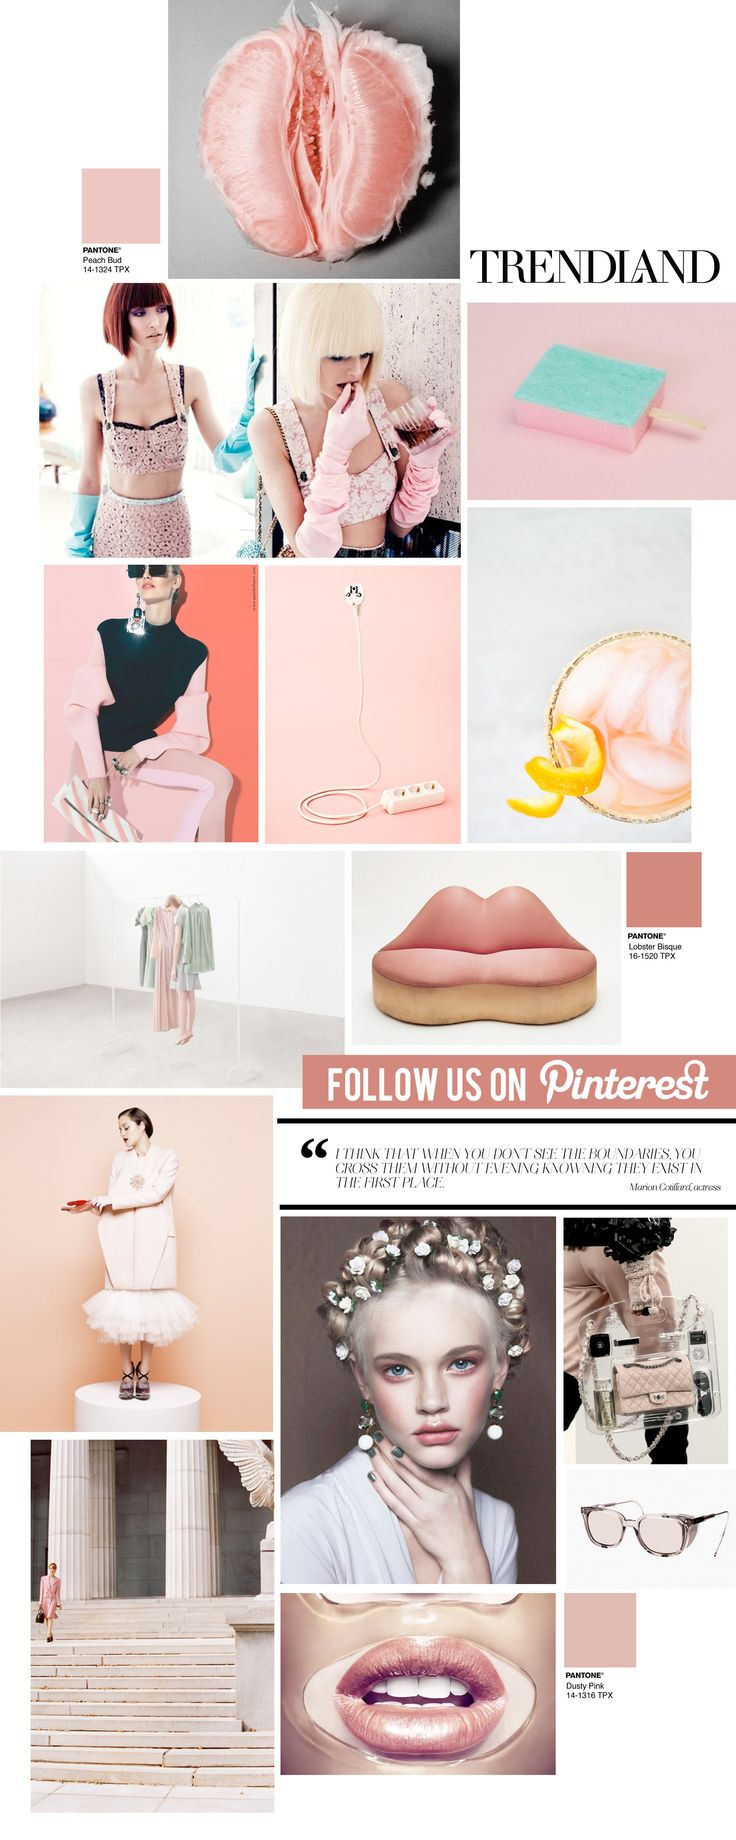 Curating the Curated: Grapefruit   Trendland: Fashion Blog & Trend Magazine